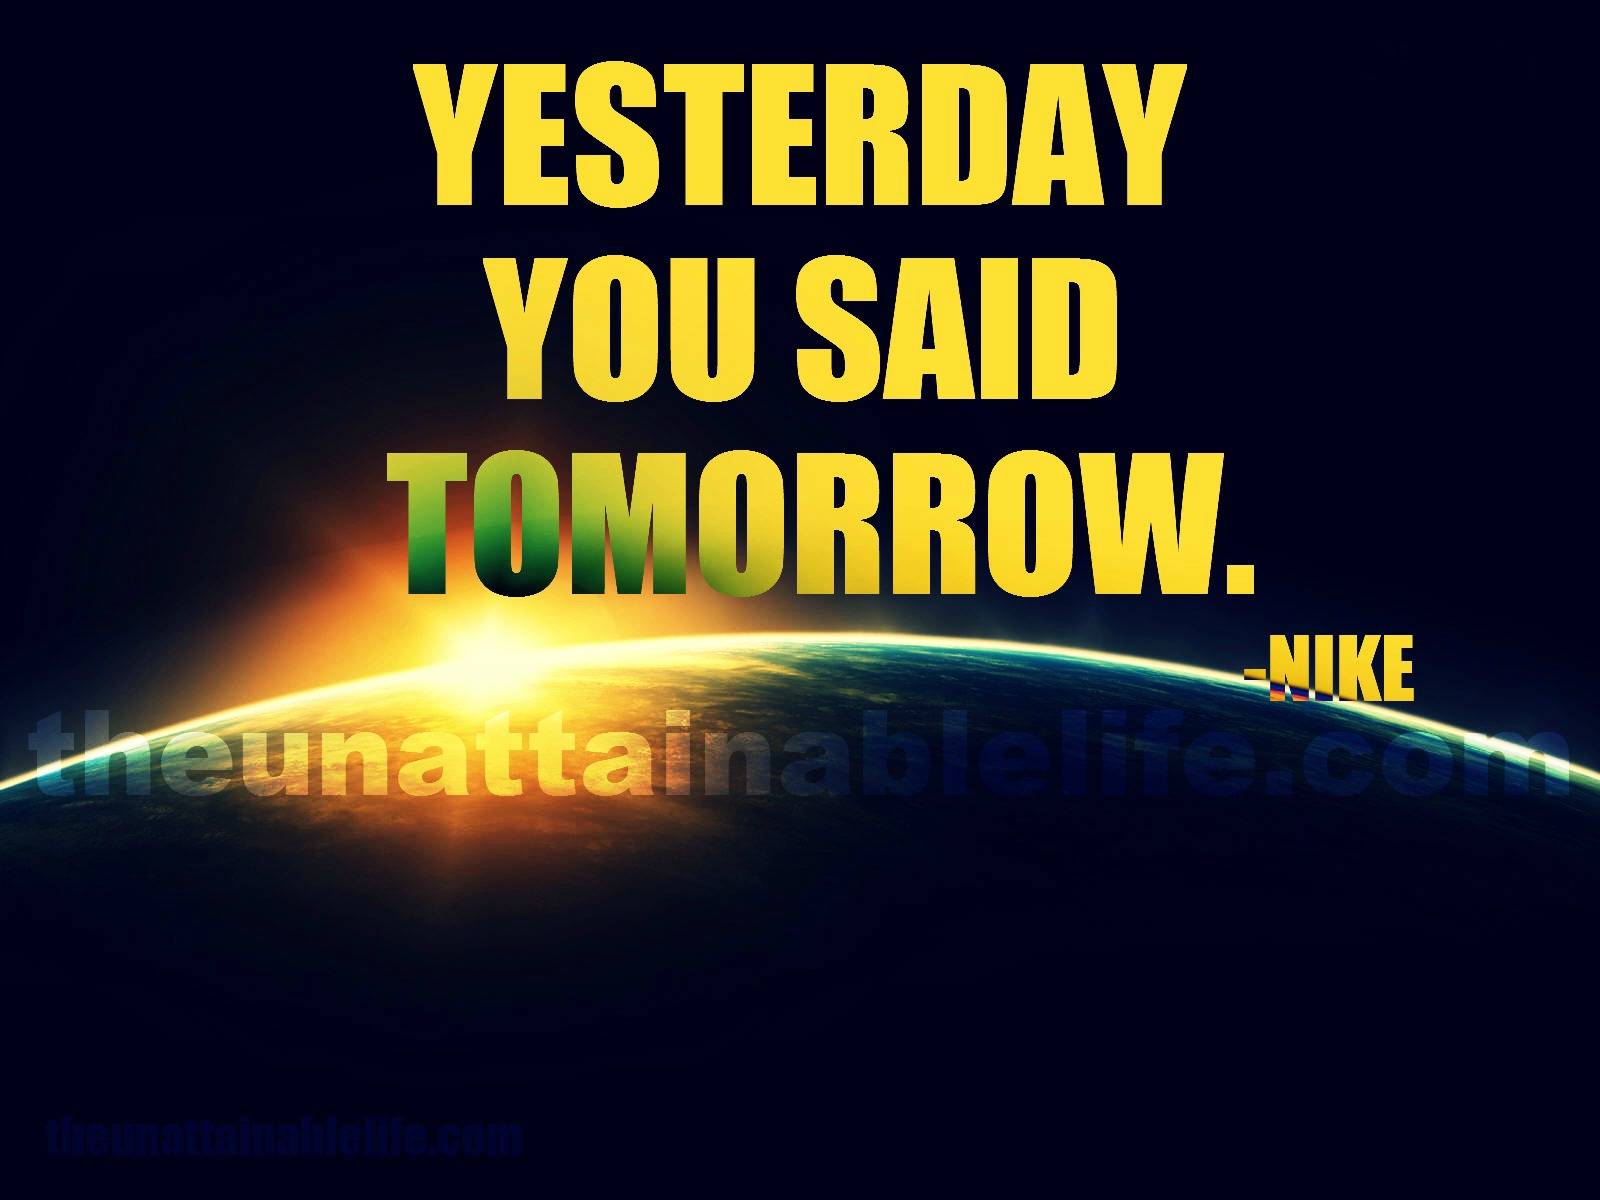 Tomorrow Funny Quotes Quotesgram: Funny Nike Quotes. QuotesGram